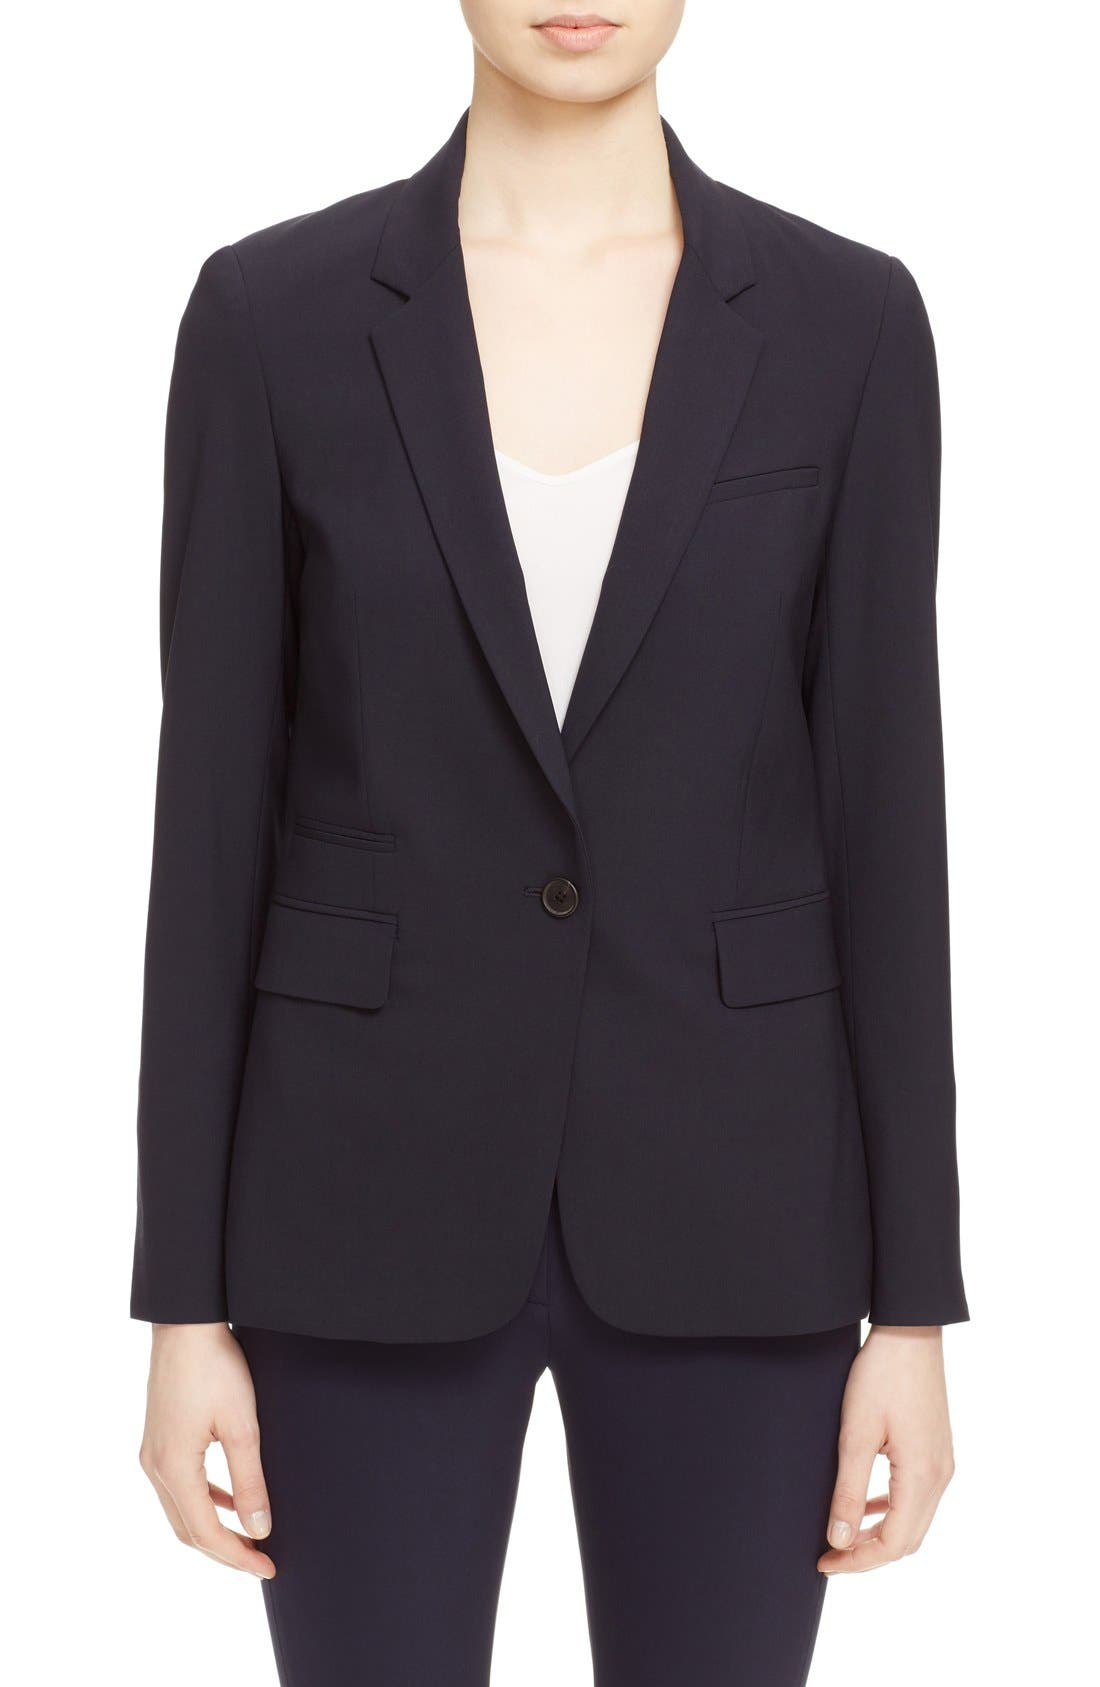 VERONICA BEARD, 'Classic' Lambswool Blend Single Button Blazer, Main thumbnail 1, color, NAVY